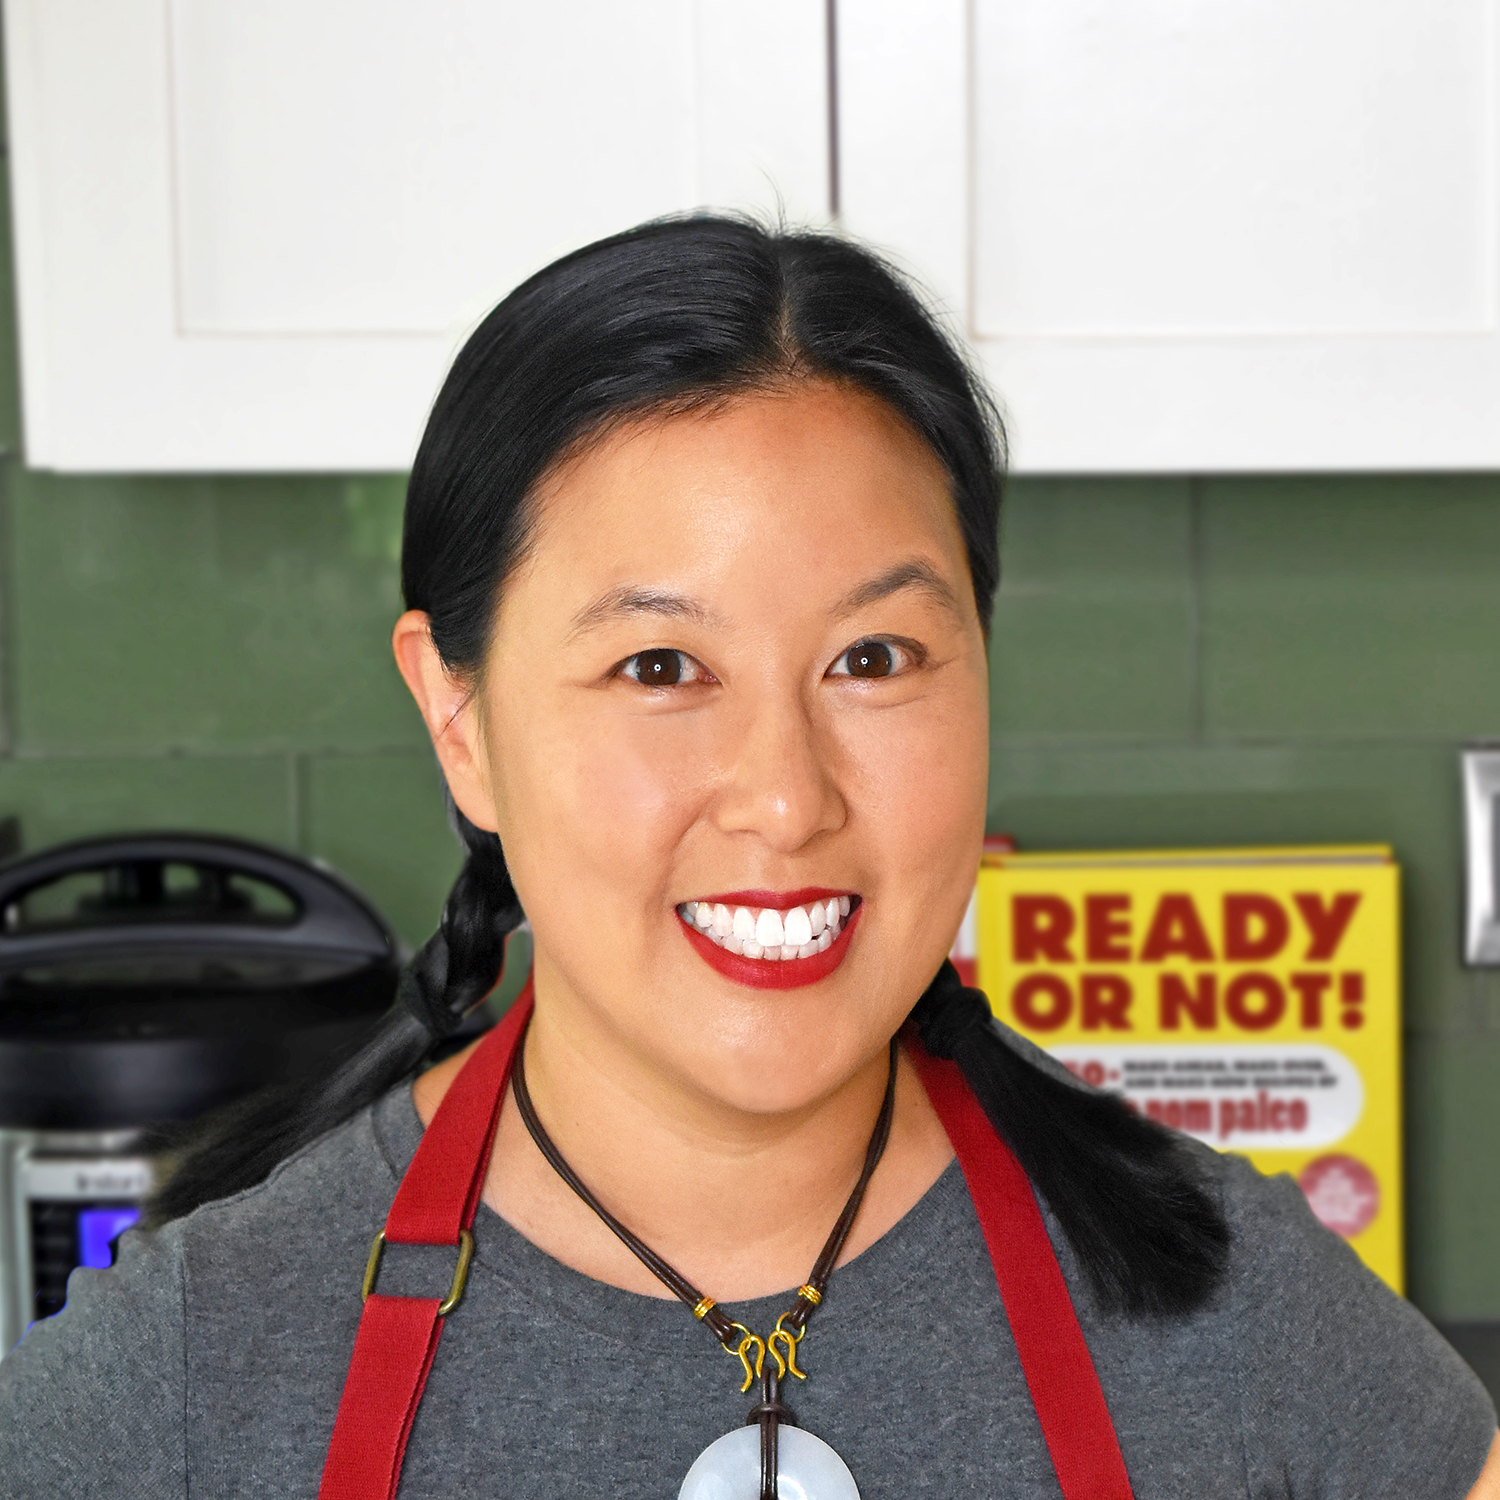 Michelle Tam of Nom Nom Paleo talking about the Instant Pot and family cooking | featured interview on Didn't I Just Feed You podcast